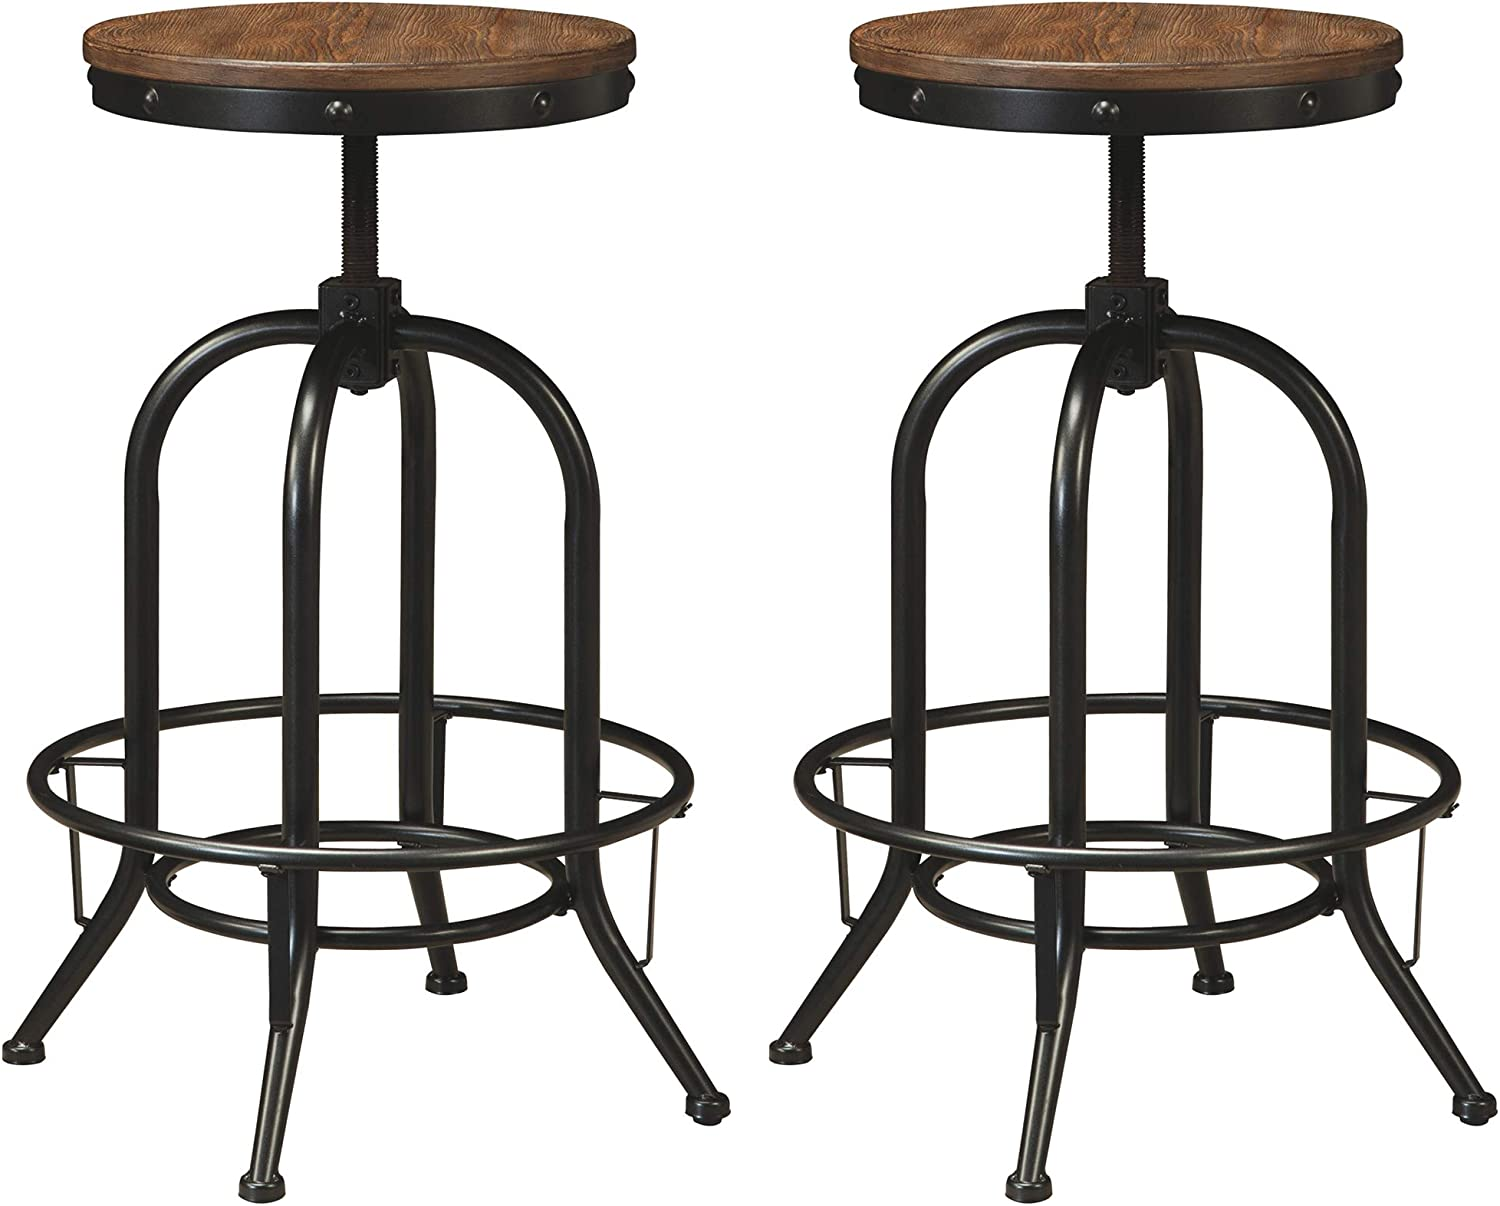 Pub height backless metal bar stool review, buy metal bar stool online